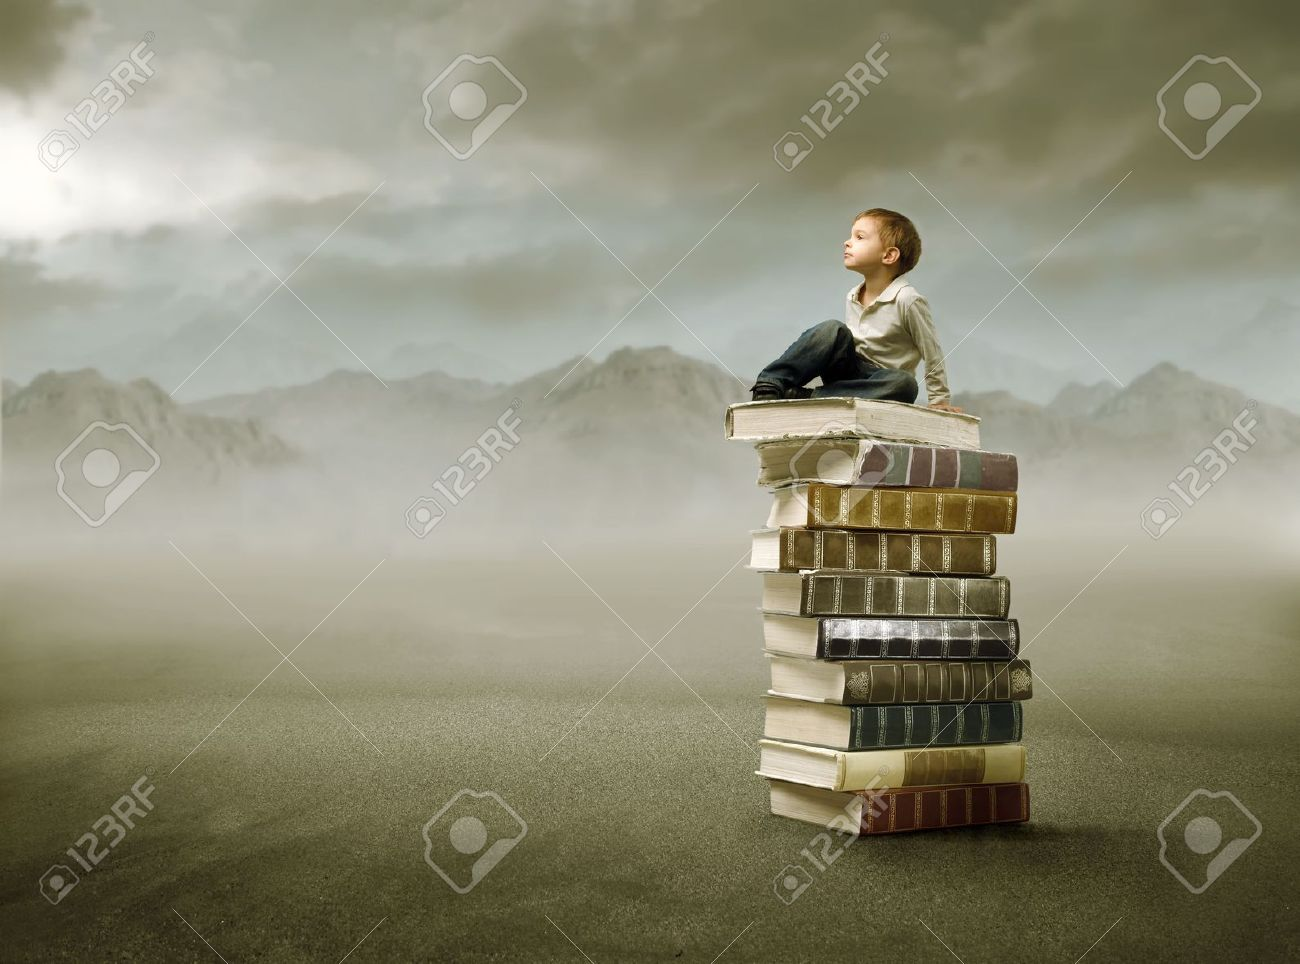 Child sitting on a stack of books in the mountains Stock Photo - 8054407